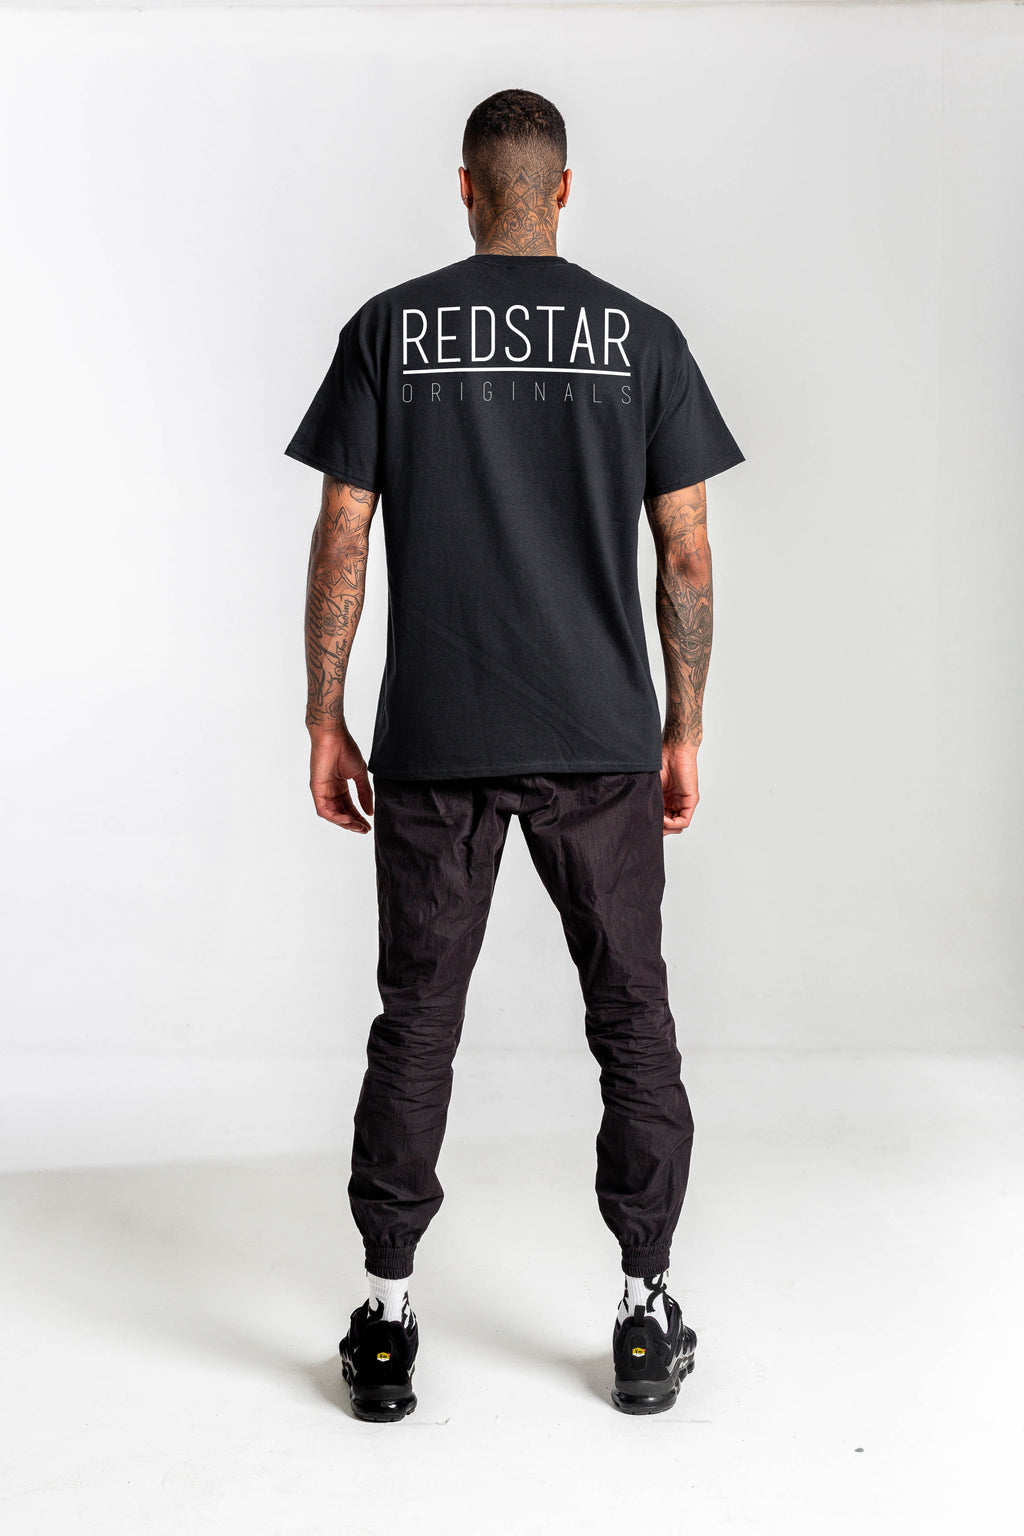 Redstar Originals Black Tshirt - Backprint & Front Embroidery